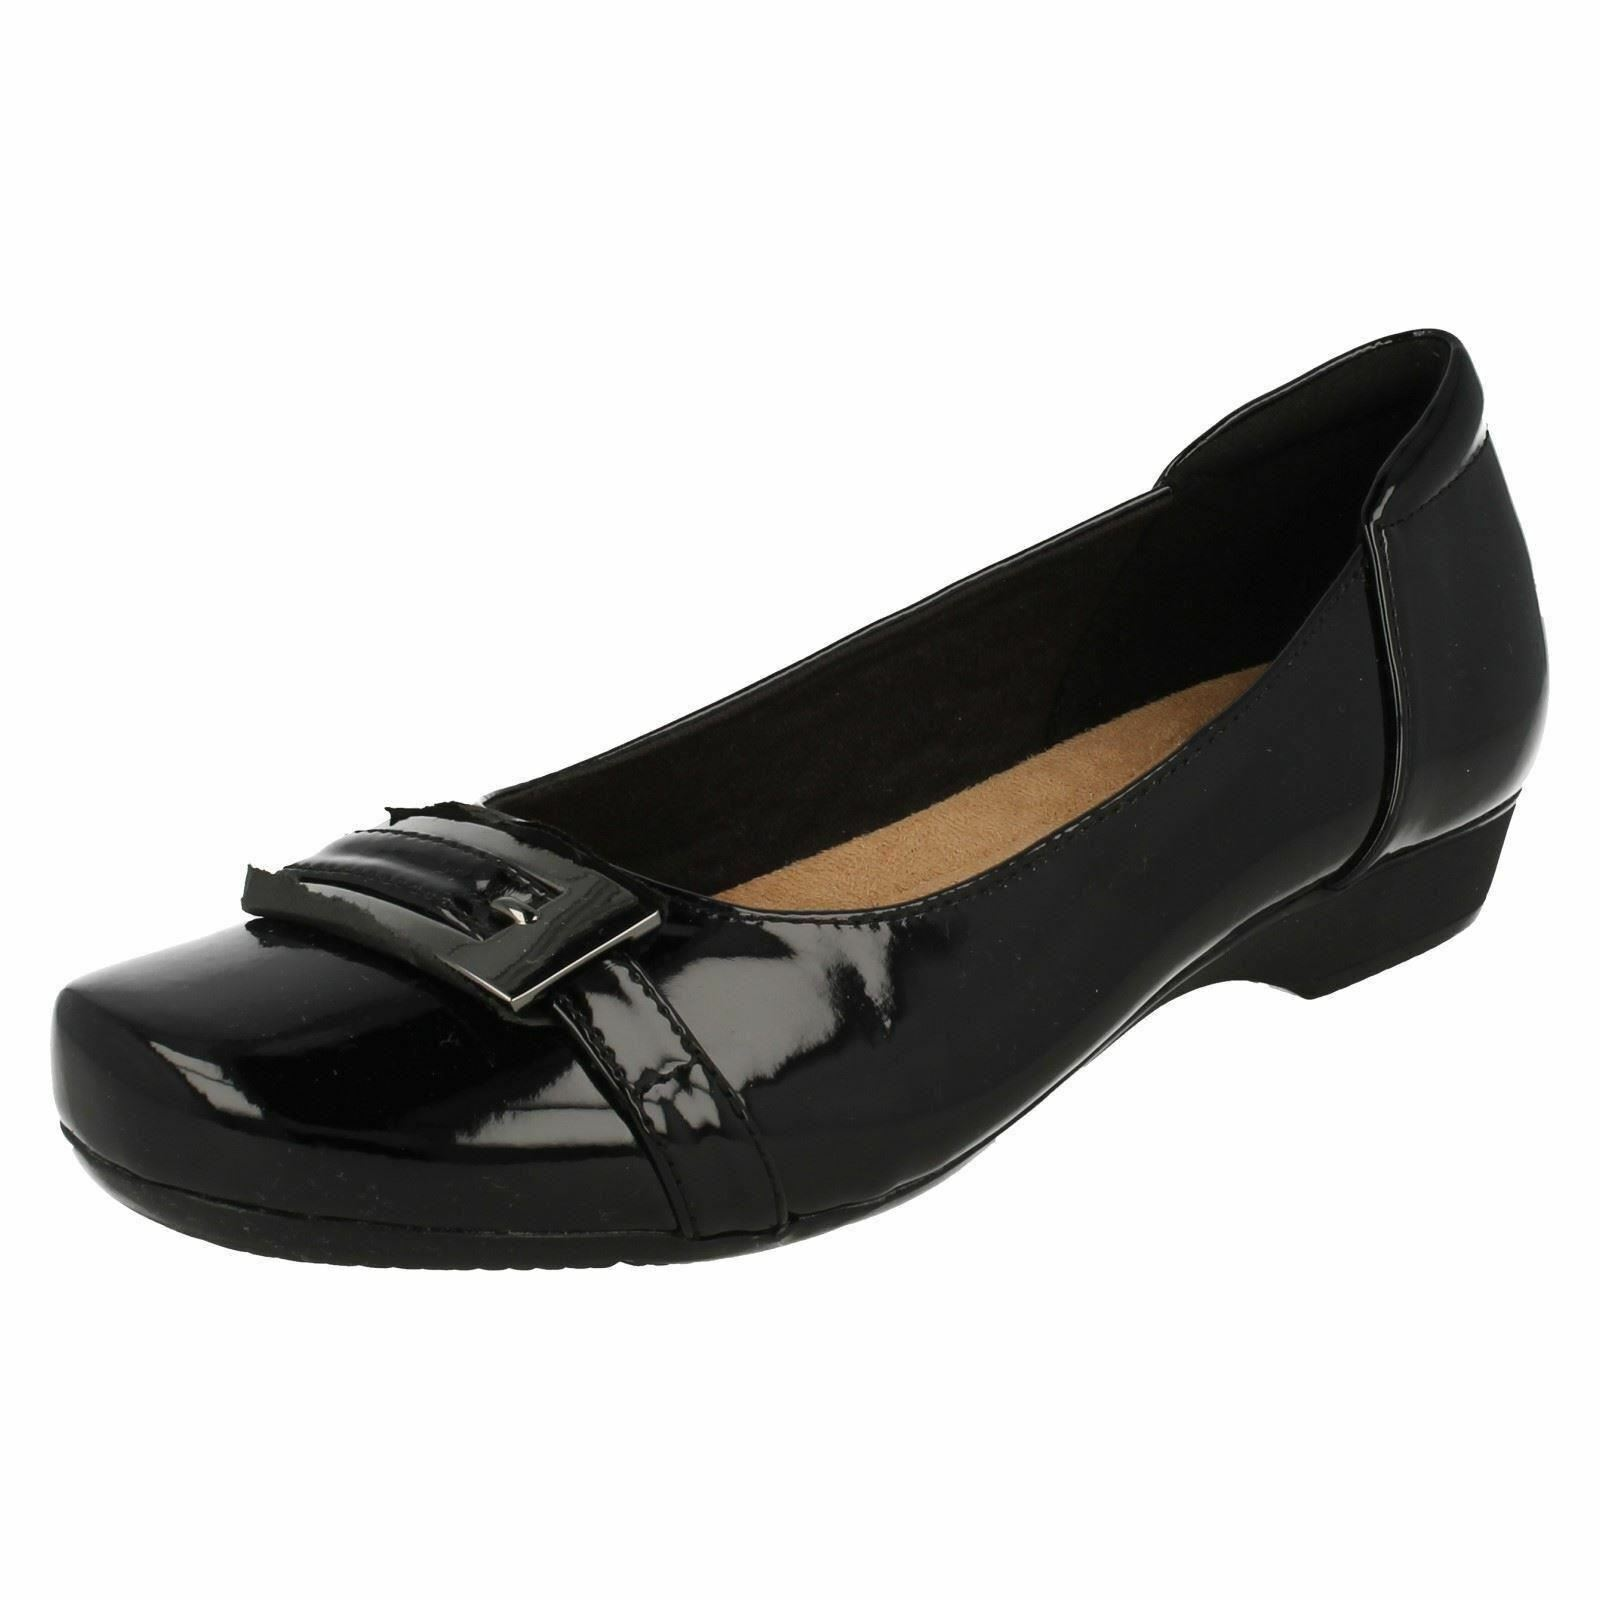 CLARKS LADIES SLIP ON SHOES BLACL PATENT STYLE BLANCHE WEST